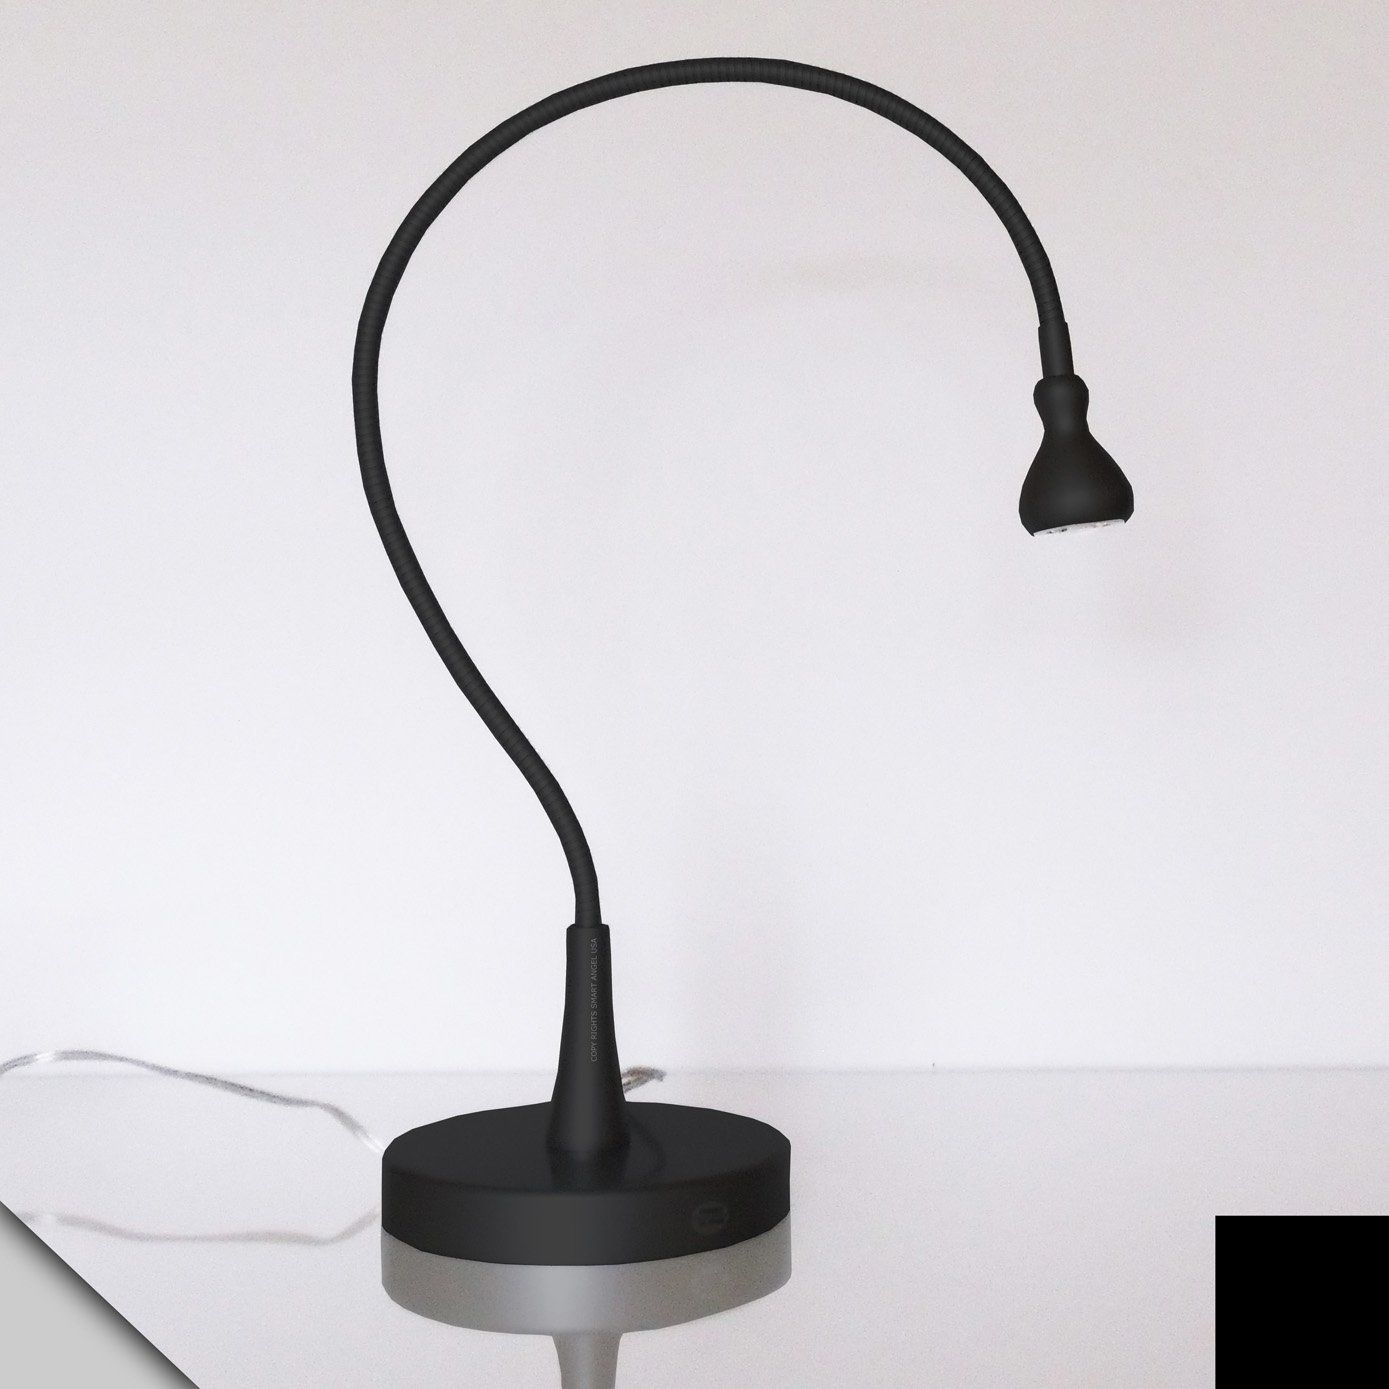 Ikea led desk lamp - Amazon Com Ikea 201 696 58 Jansjo Desk Work Led Lamp Light Black